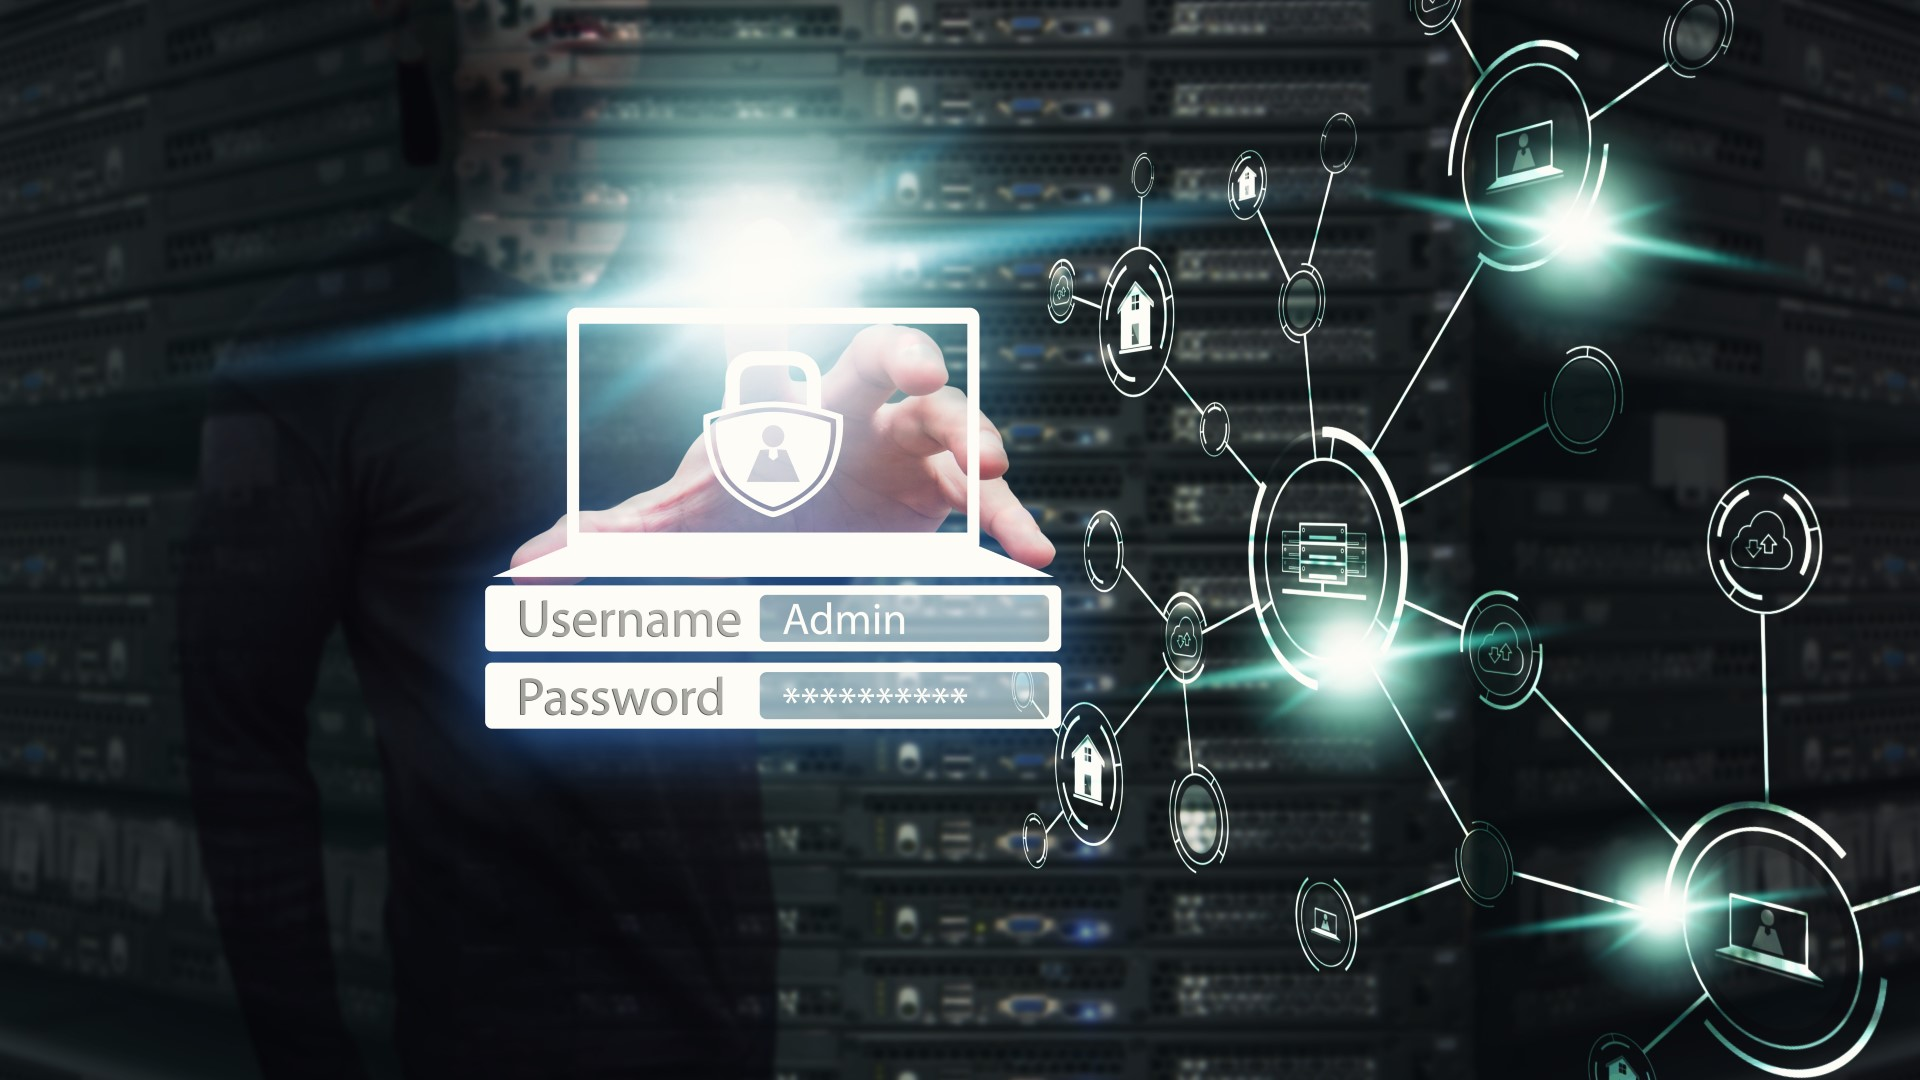 EMEA Sees Double-Digit Growth for Managed Security